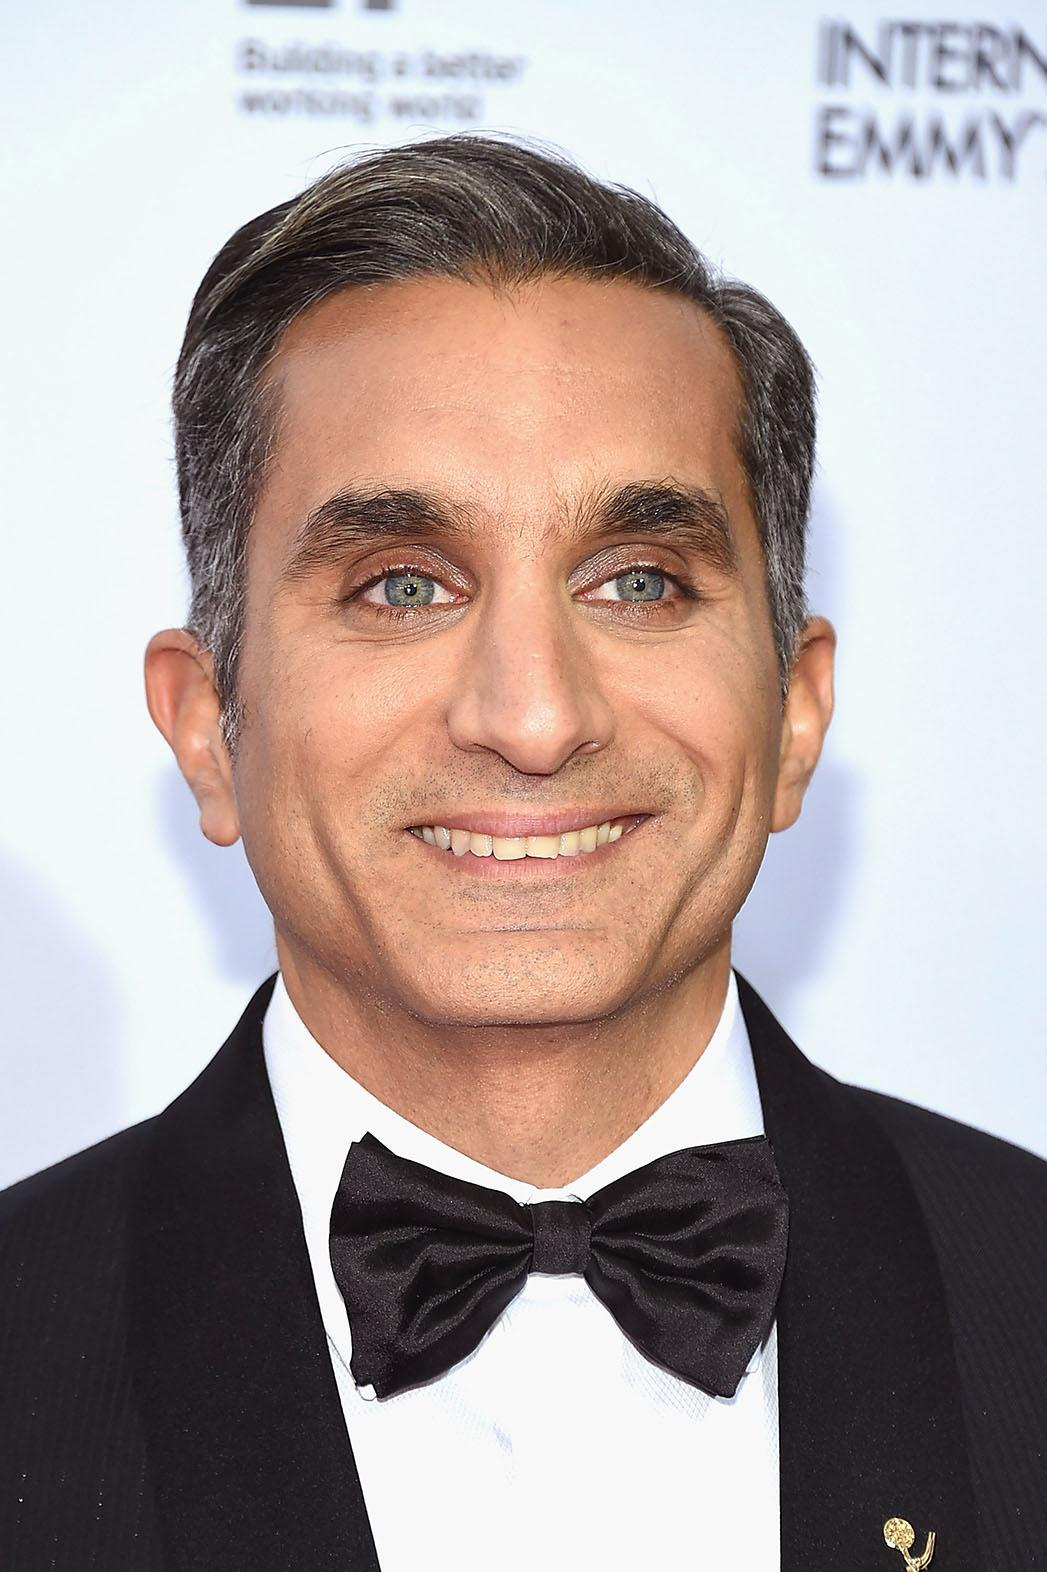 how tall is bassem youssef